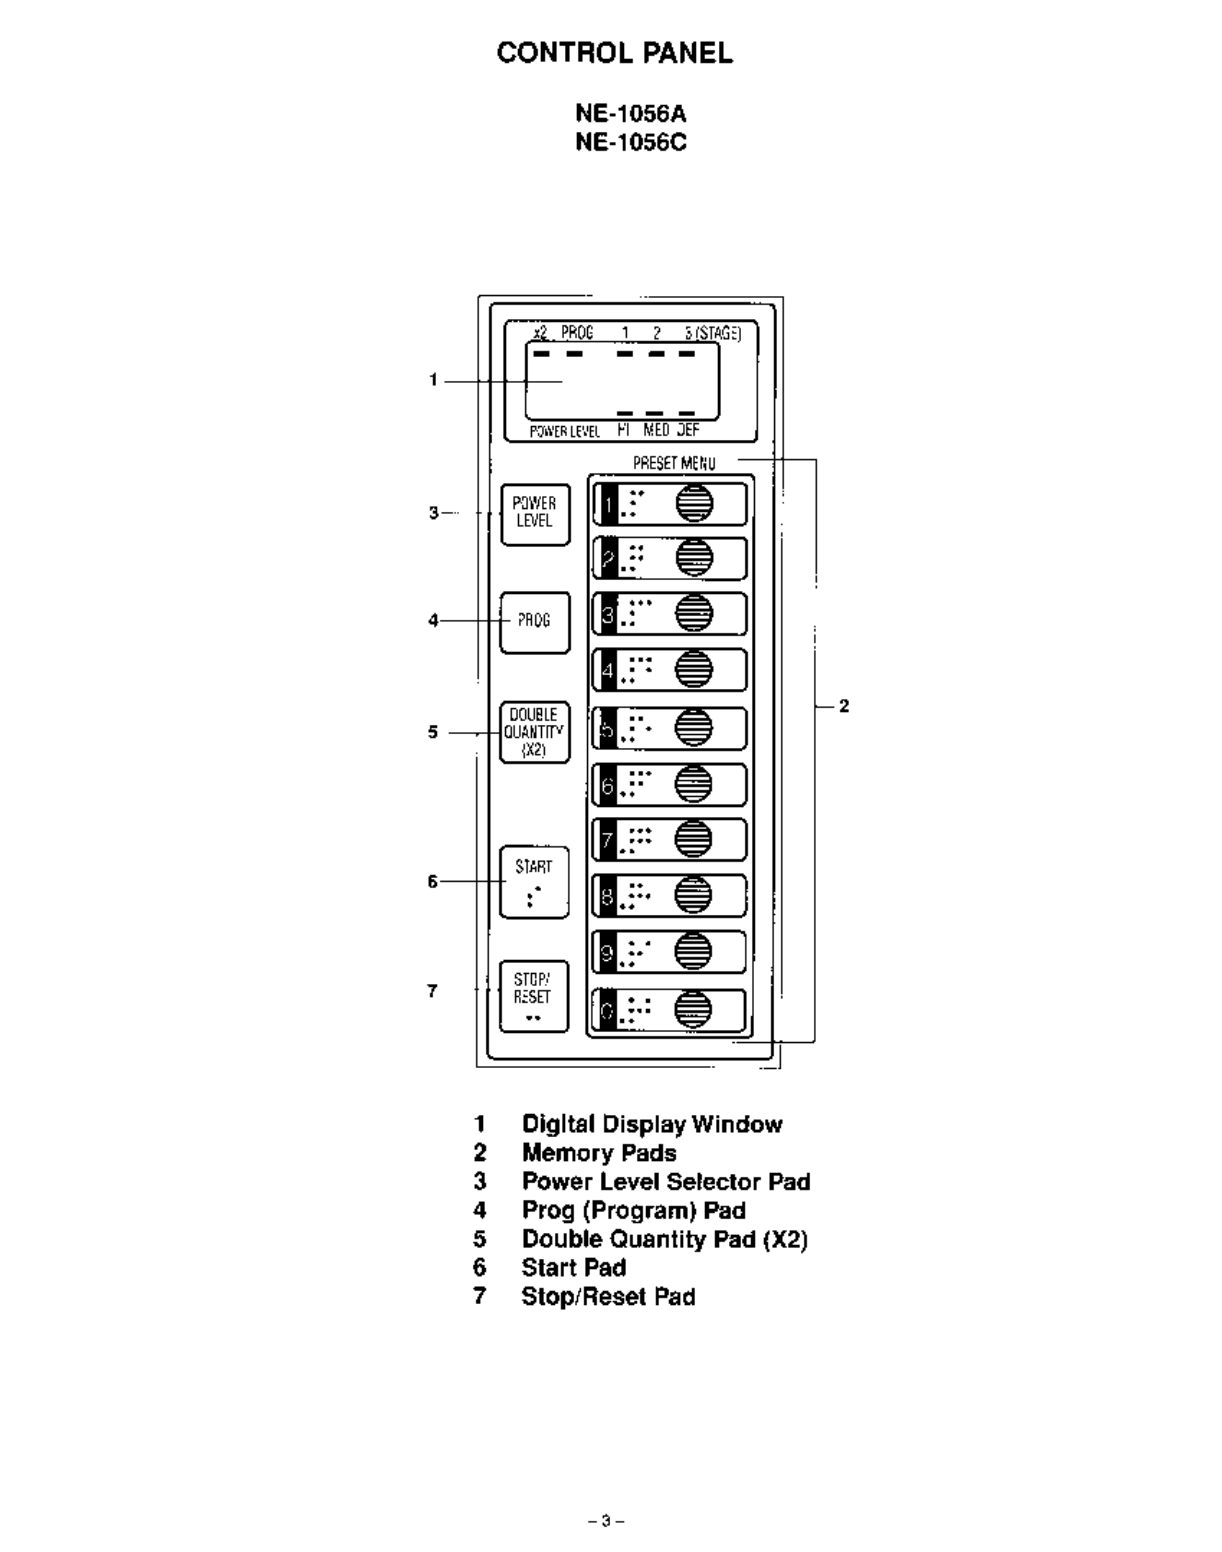 Page 3 of Panasonic Microwave Oven NE-1056C User Guide